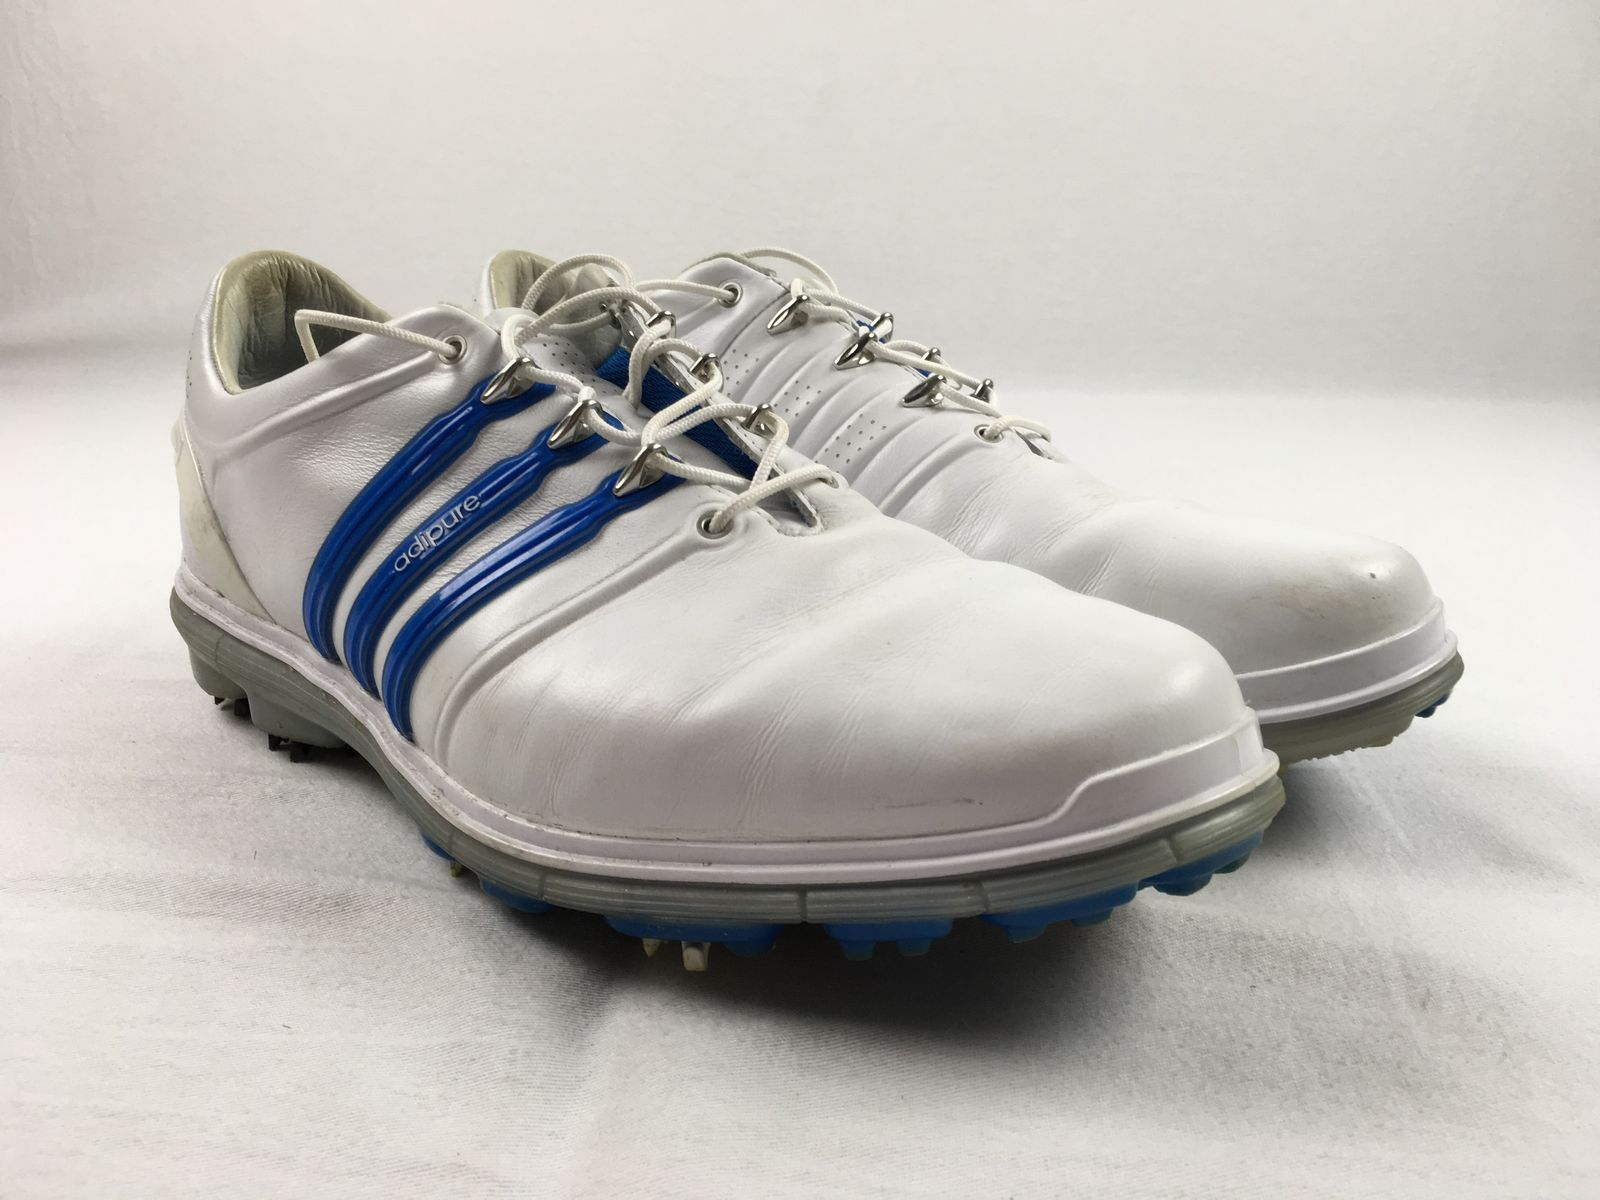 Details about adidas Pure 360 - White Blue Golf Shoes (Men s 11) - Used 0c0fb64e3